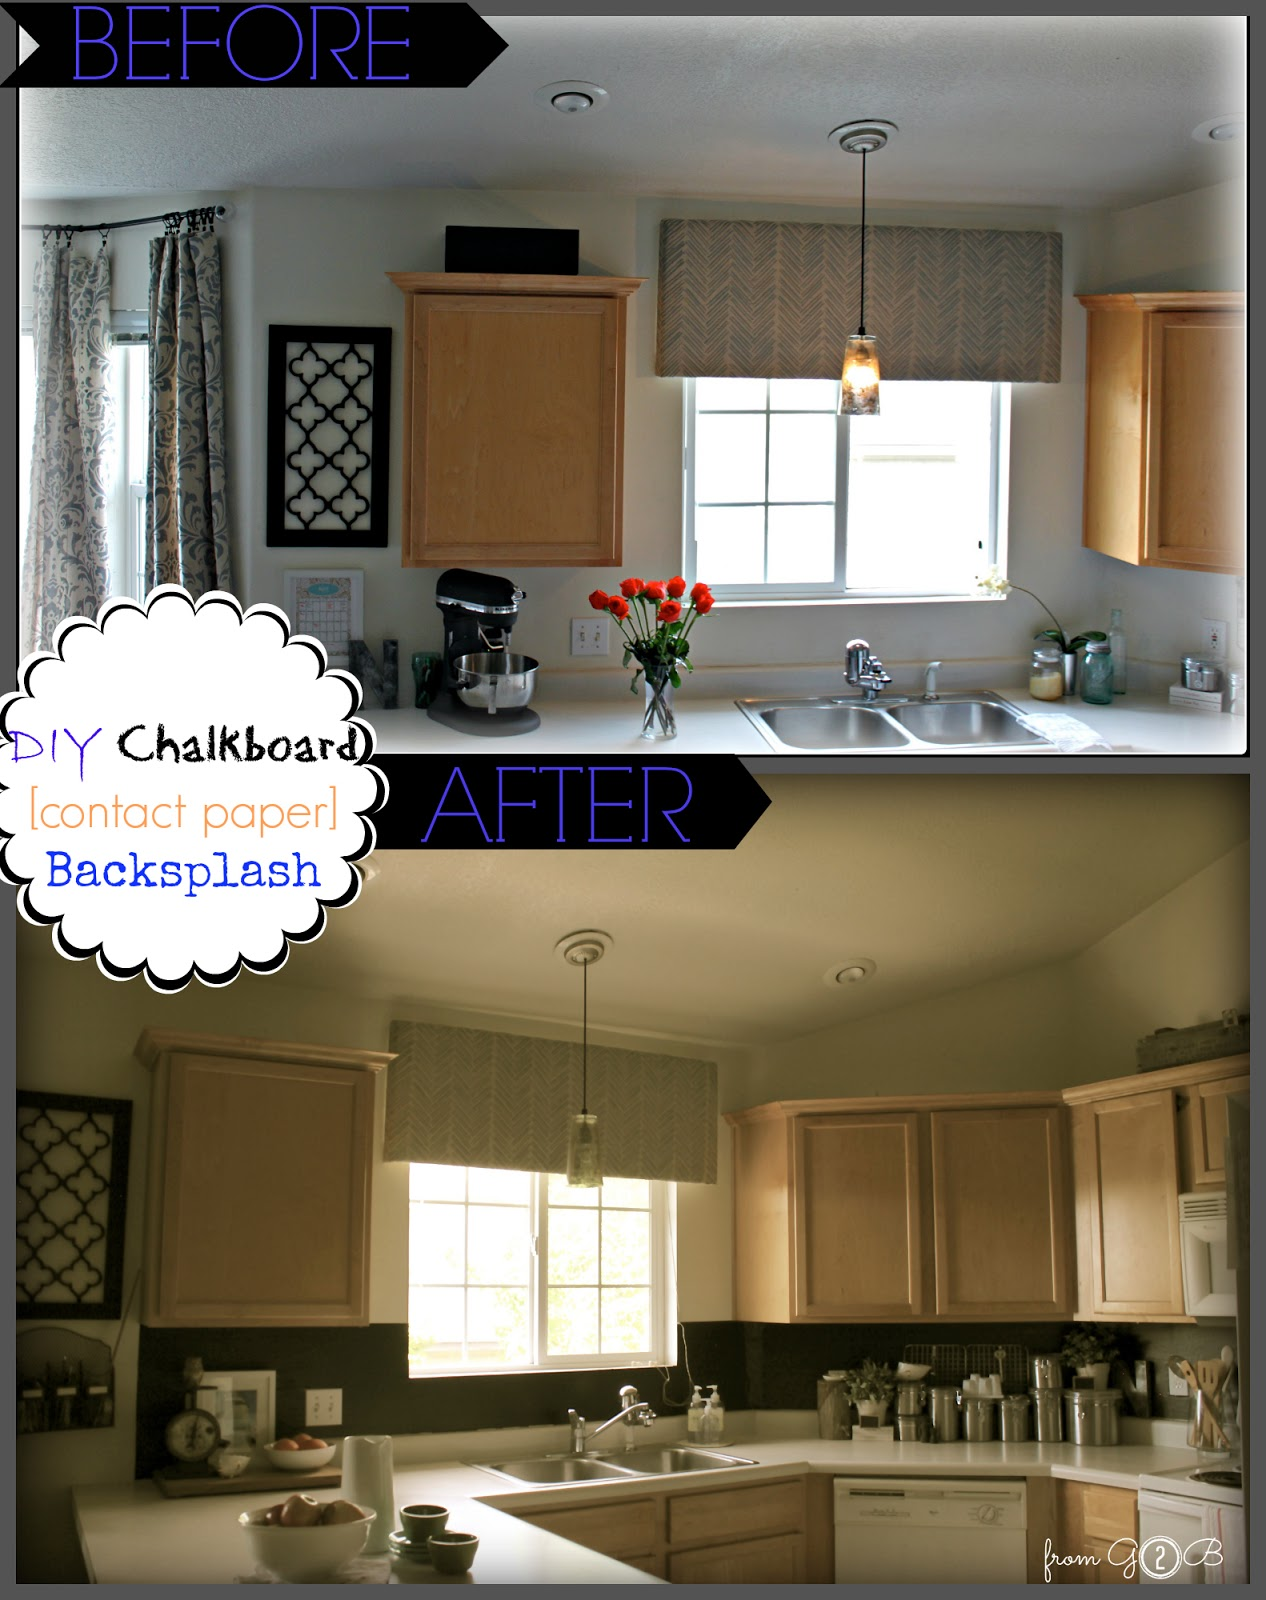 Kitchen Backsplash Contact Paper from gardners 2 bergers: ➷ diy chalkboard 《contact paper